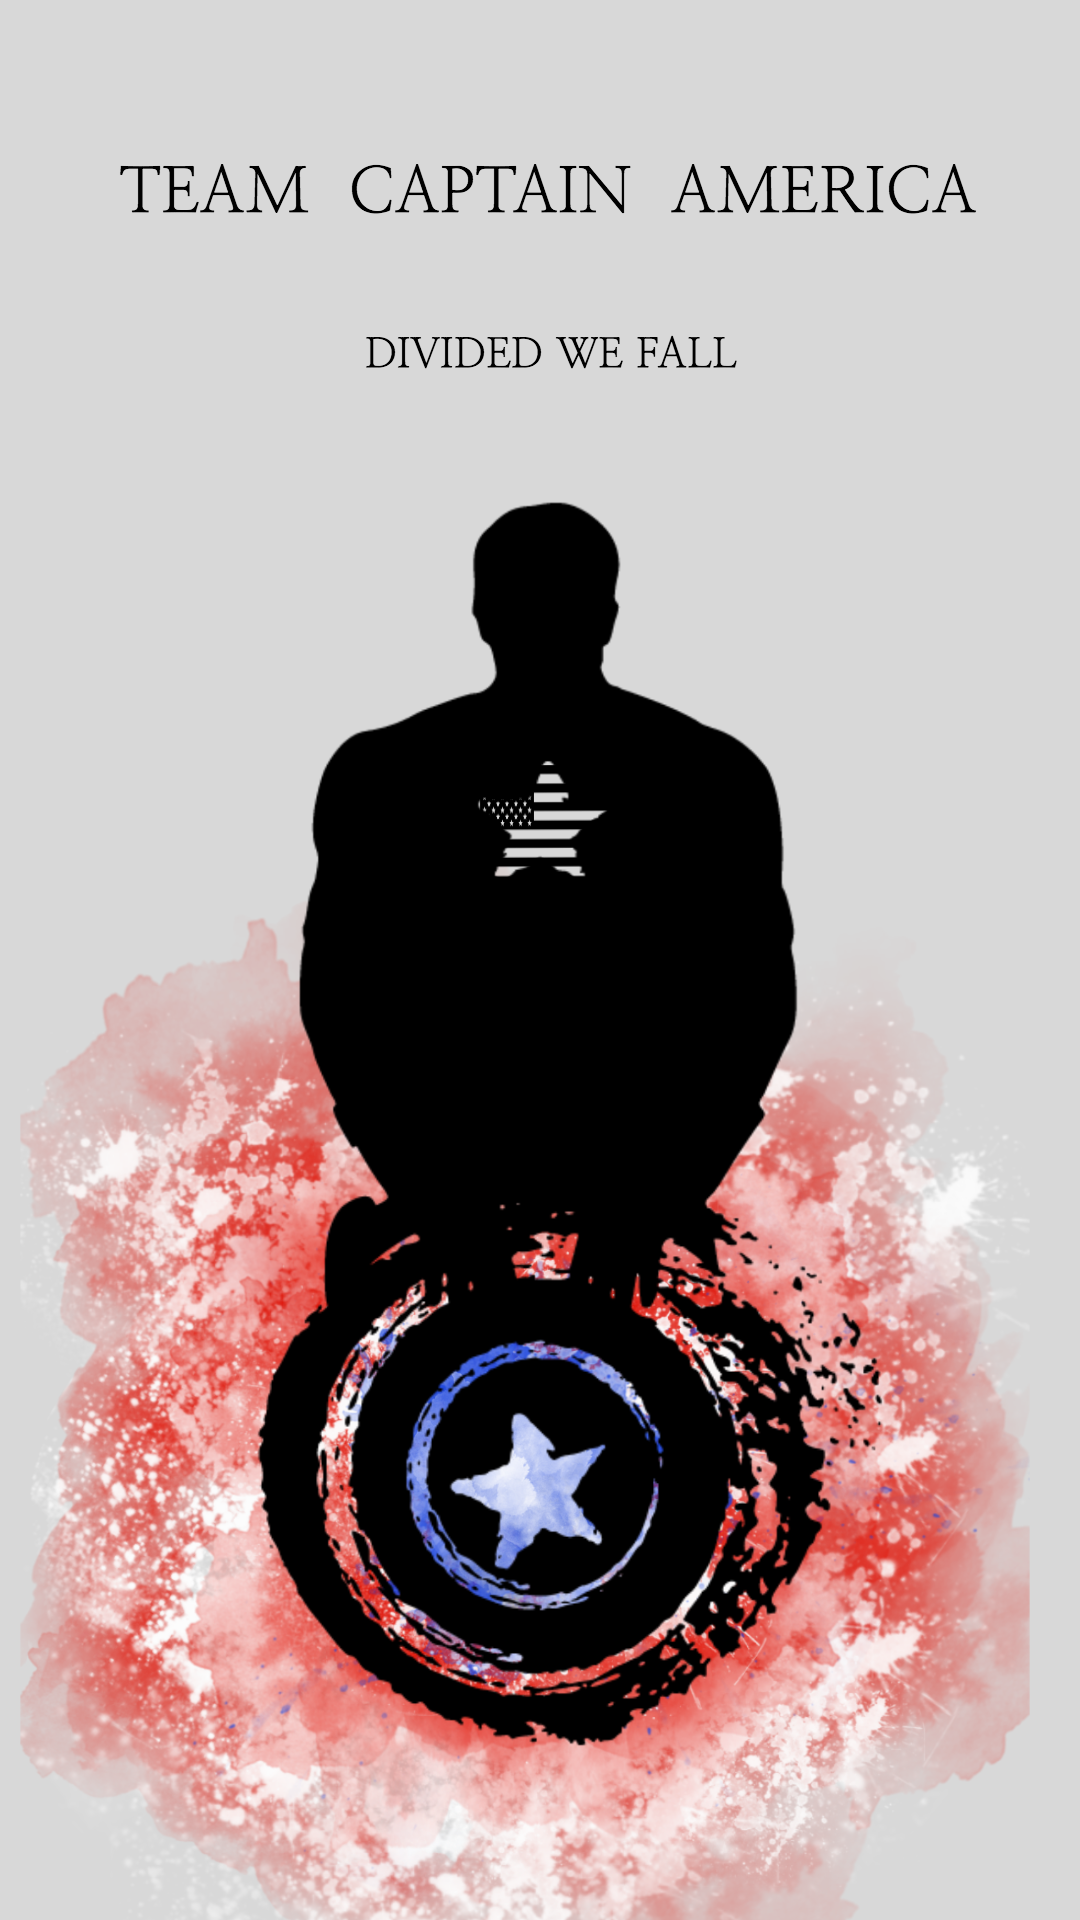 Sputnik iPhone Wallpaper + Team Captain America Free for